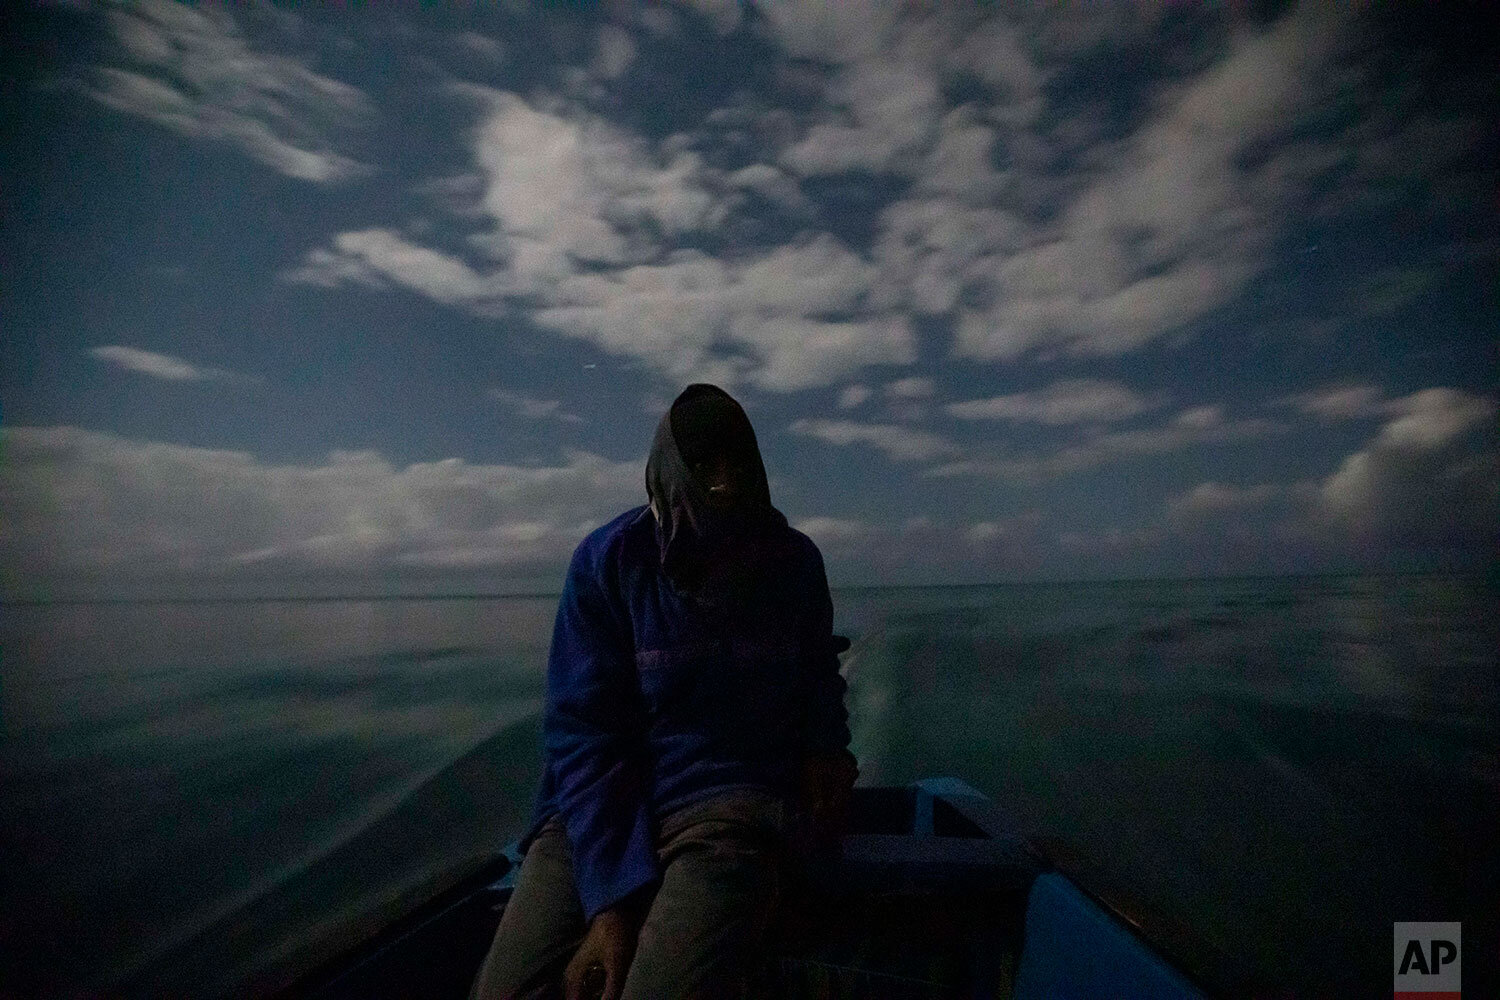 White River Fish Sanctuary warden Mark Lobban steers the boat under moonlight while patrolling the no-take zone for illegal fishermen in Ocho Rios, Jamaica, Friday, Feb. 15, 2019. Two years ago, fishermen joined with local businesses to form a marine association and negotiate the boundaries for a no-fishing zone stretching two miles along the coast. A simple line in the water is hardly a deterrent, however, for a boundary to be meaningful, it must be enforced. (AP Photo/David Goldman)